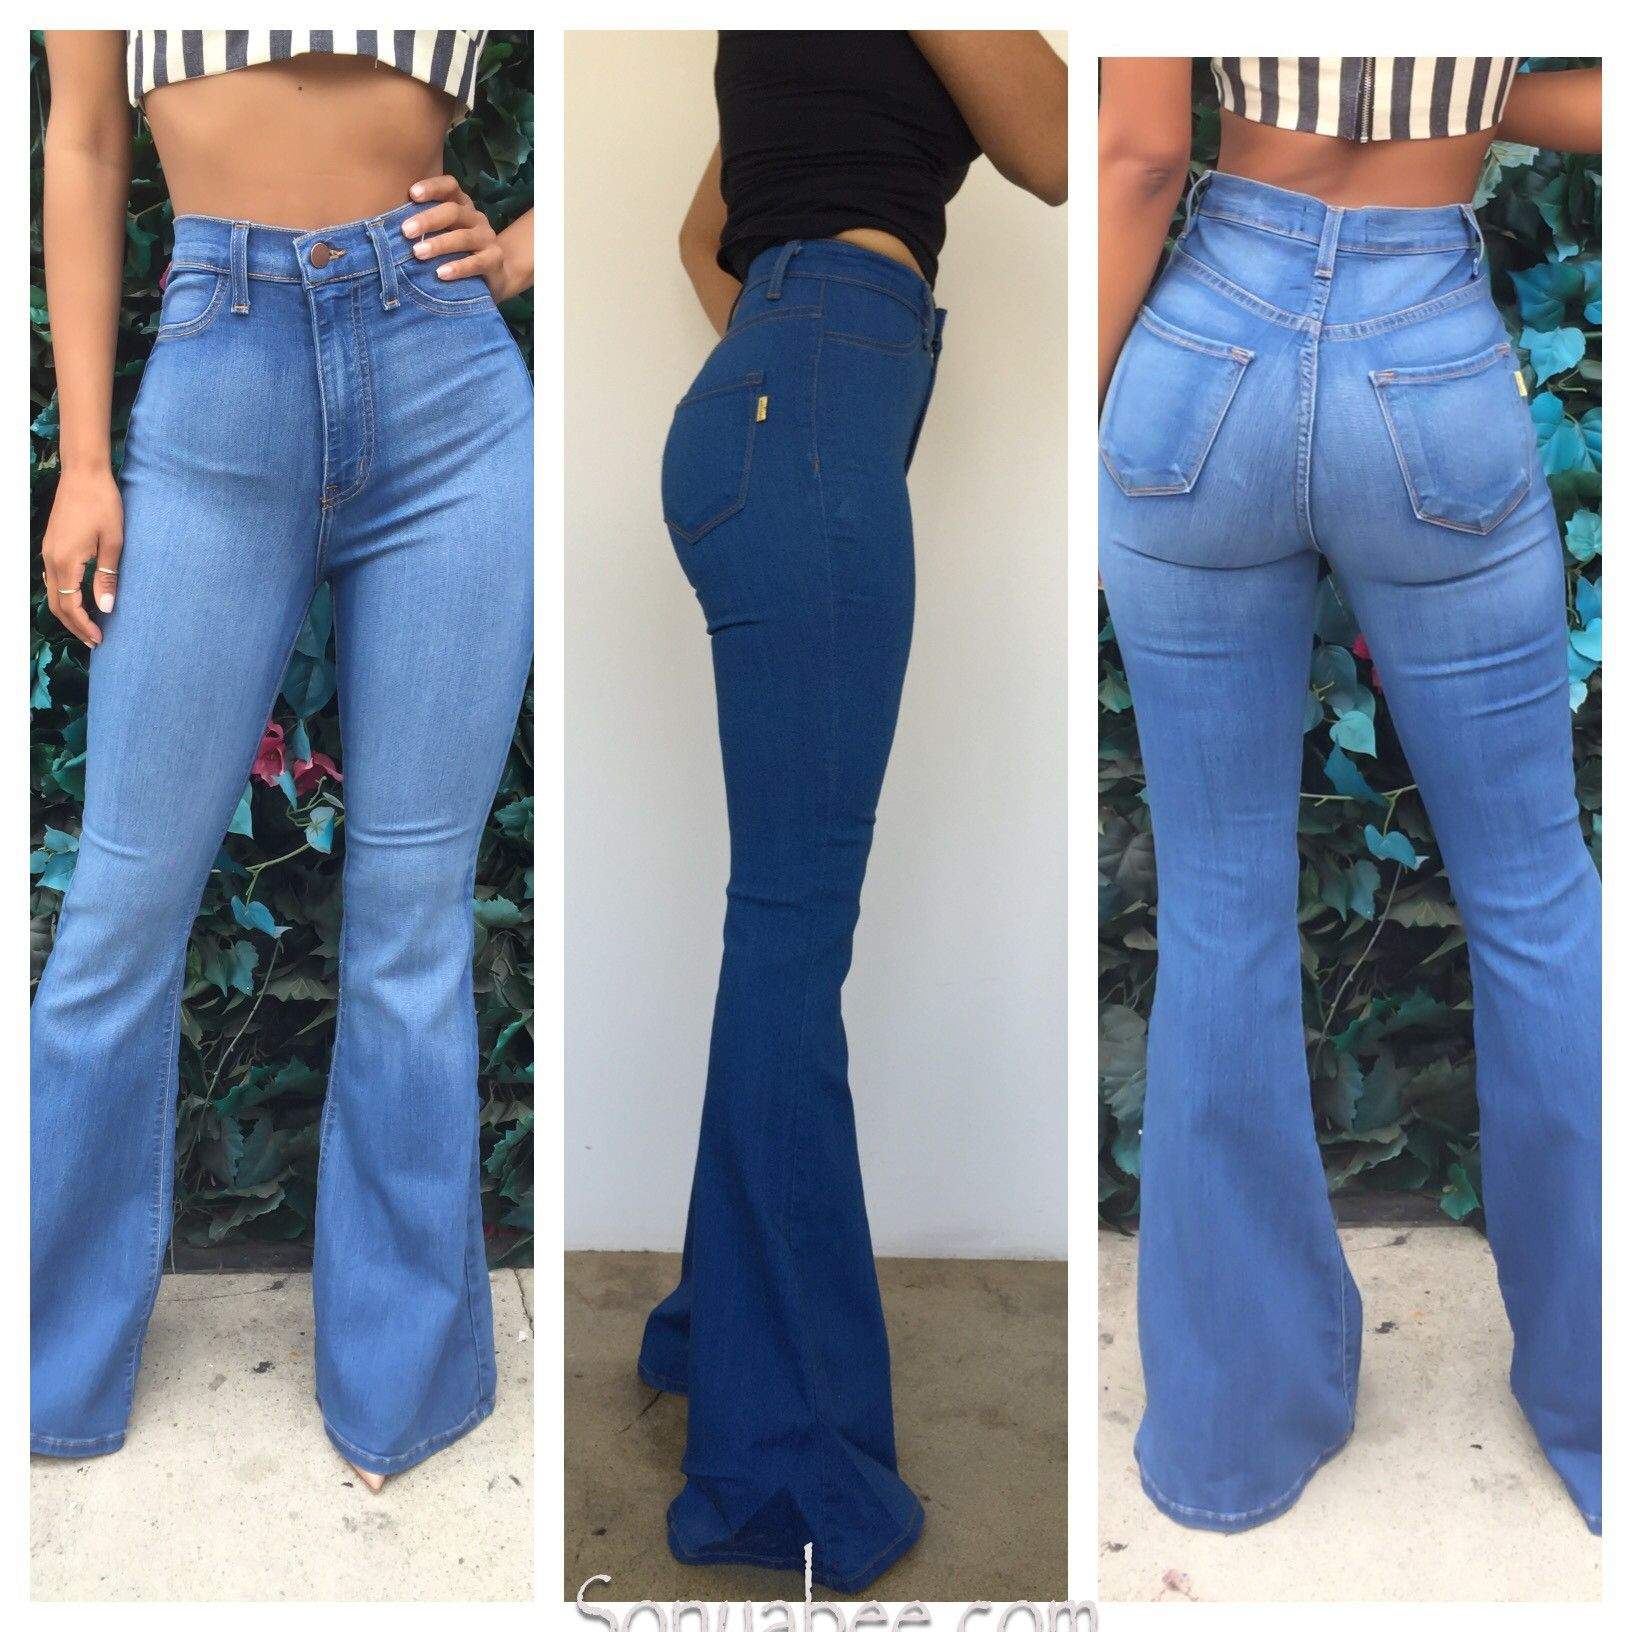 f48bb77a39db Bell Bottom Jeans – Sonya Bee s Boutique